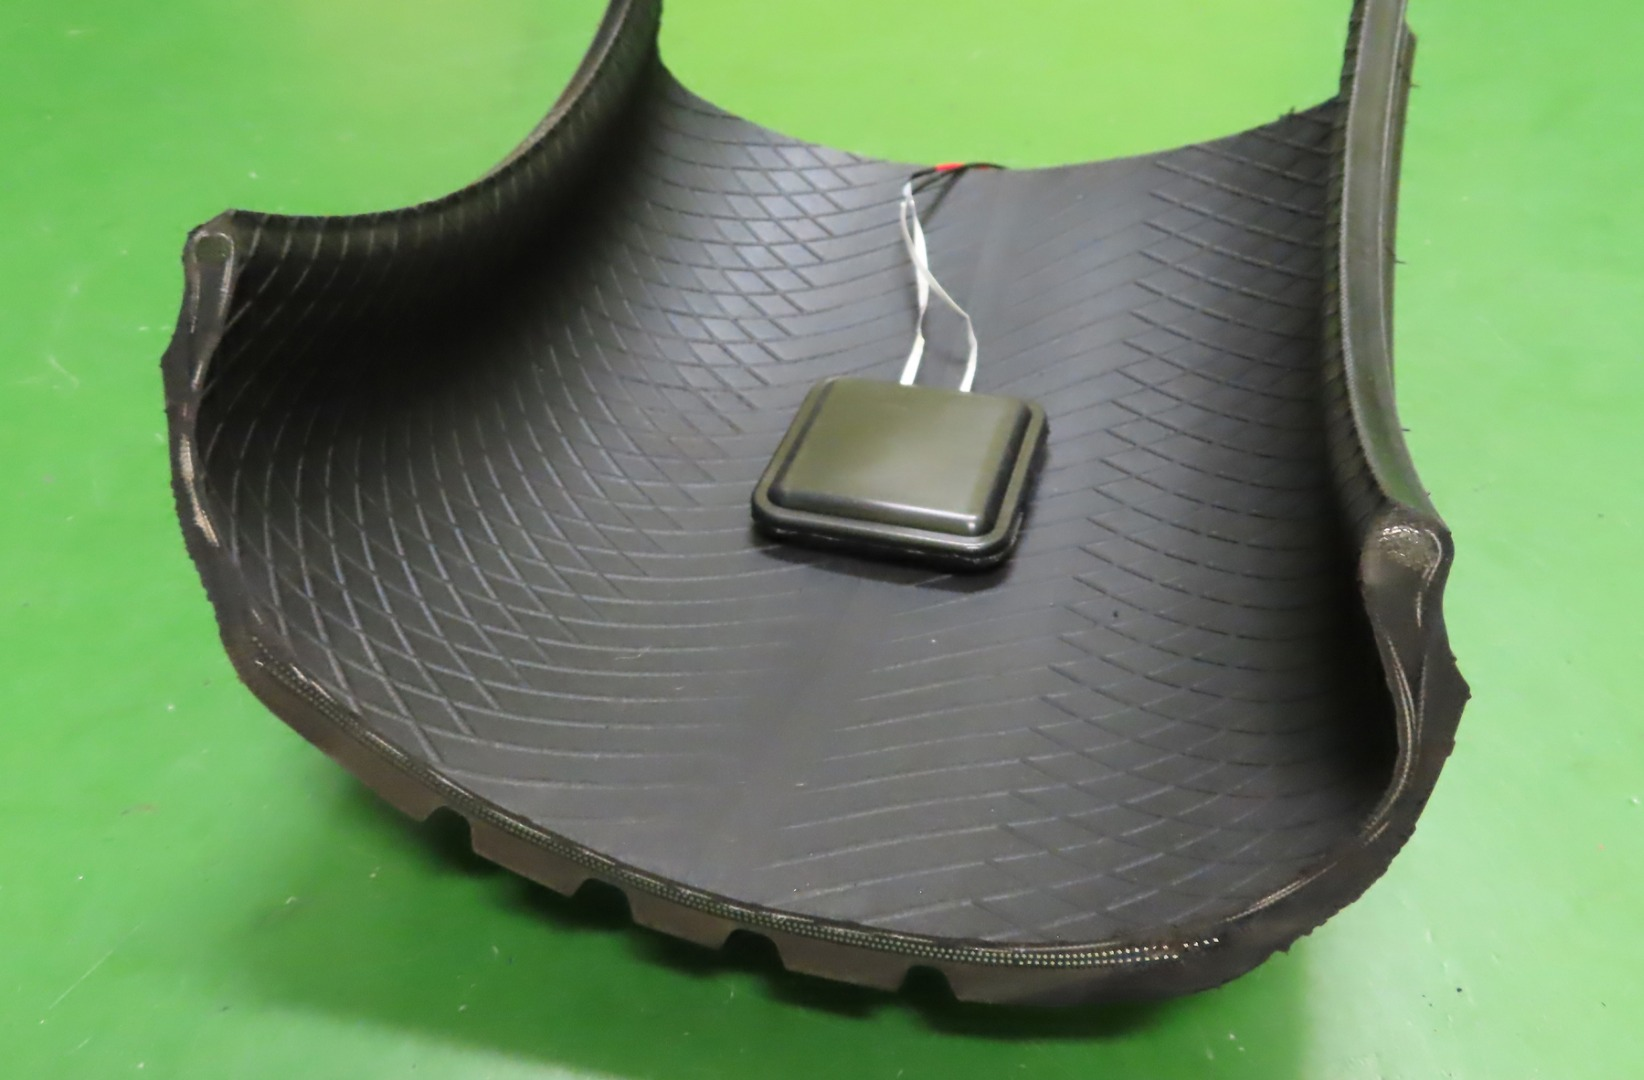 Sumitomo's concept tire harnesses friction to generate electricity